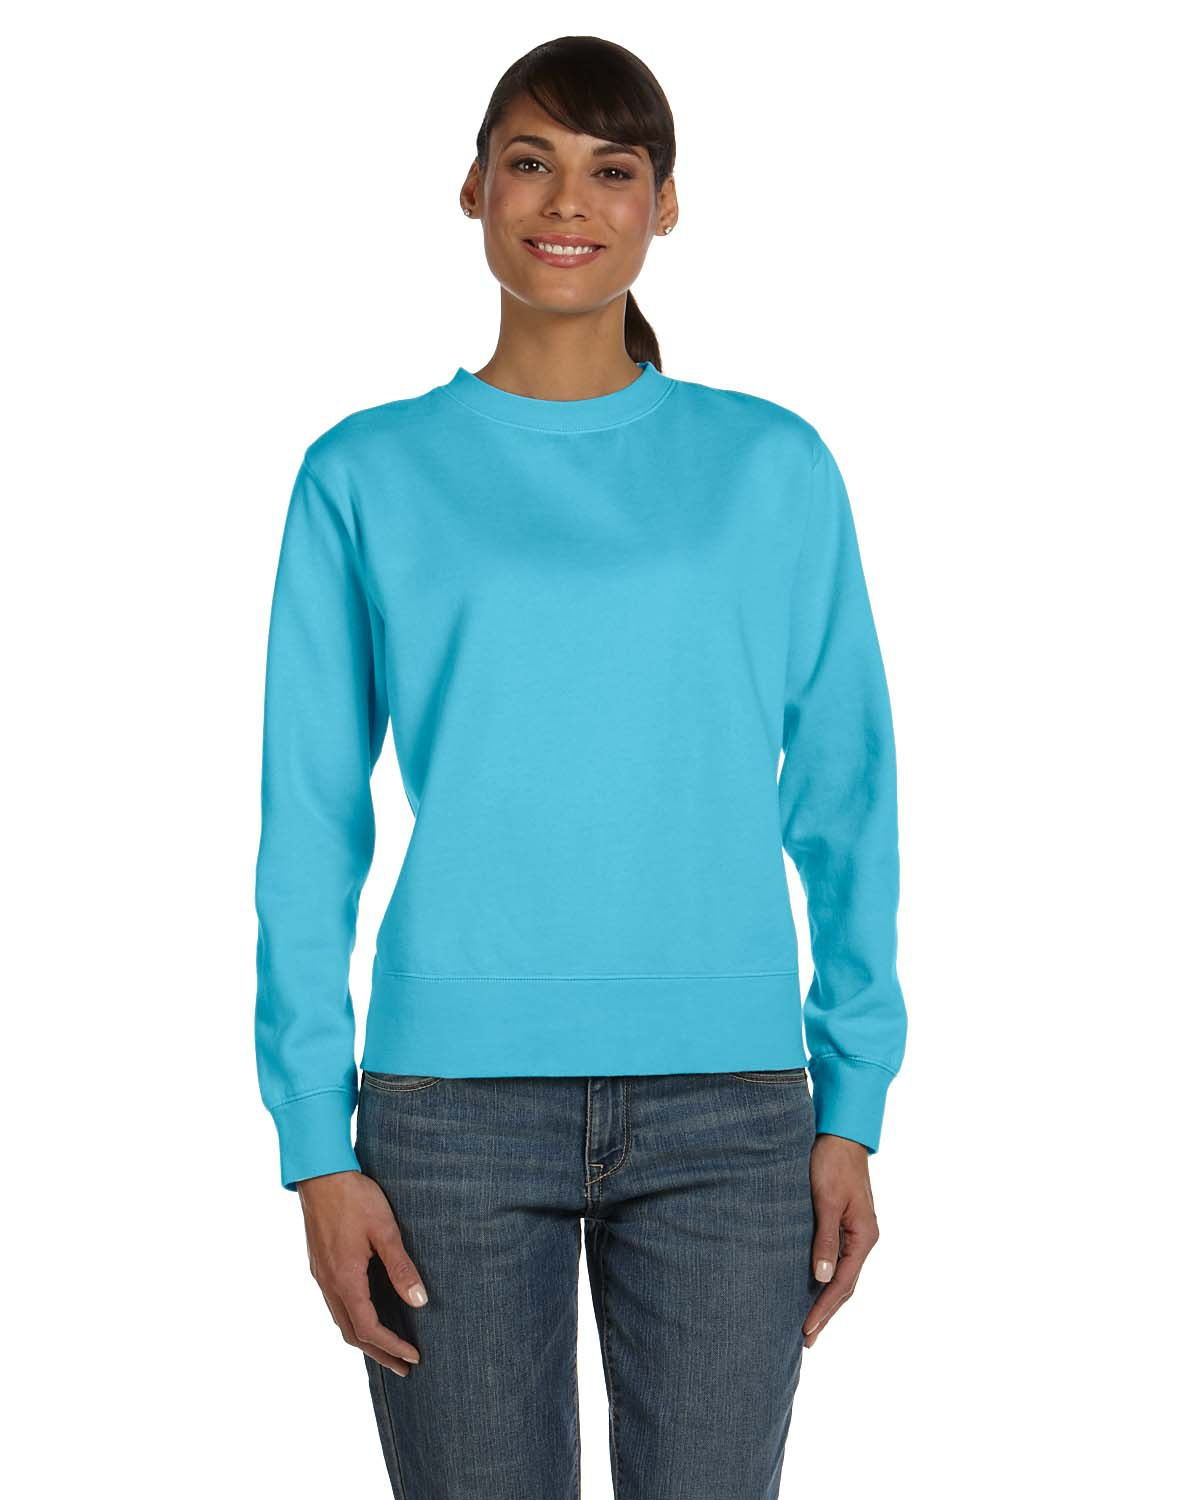 Comfort Colors 1596 - Garment Dyed Women's Crewneck ...